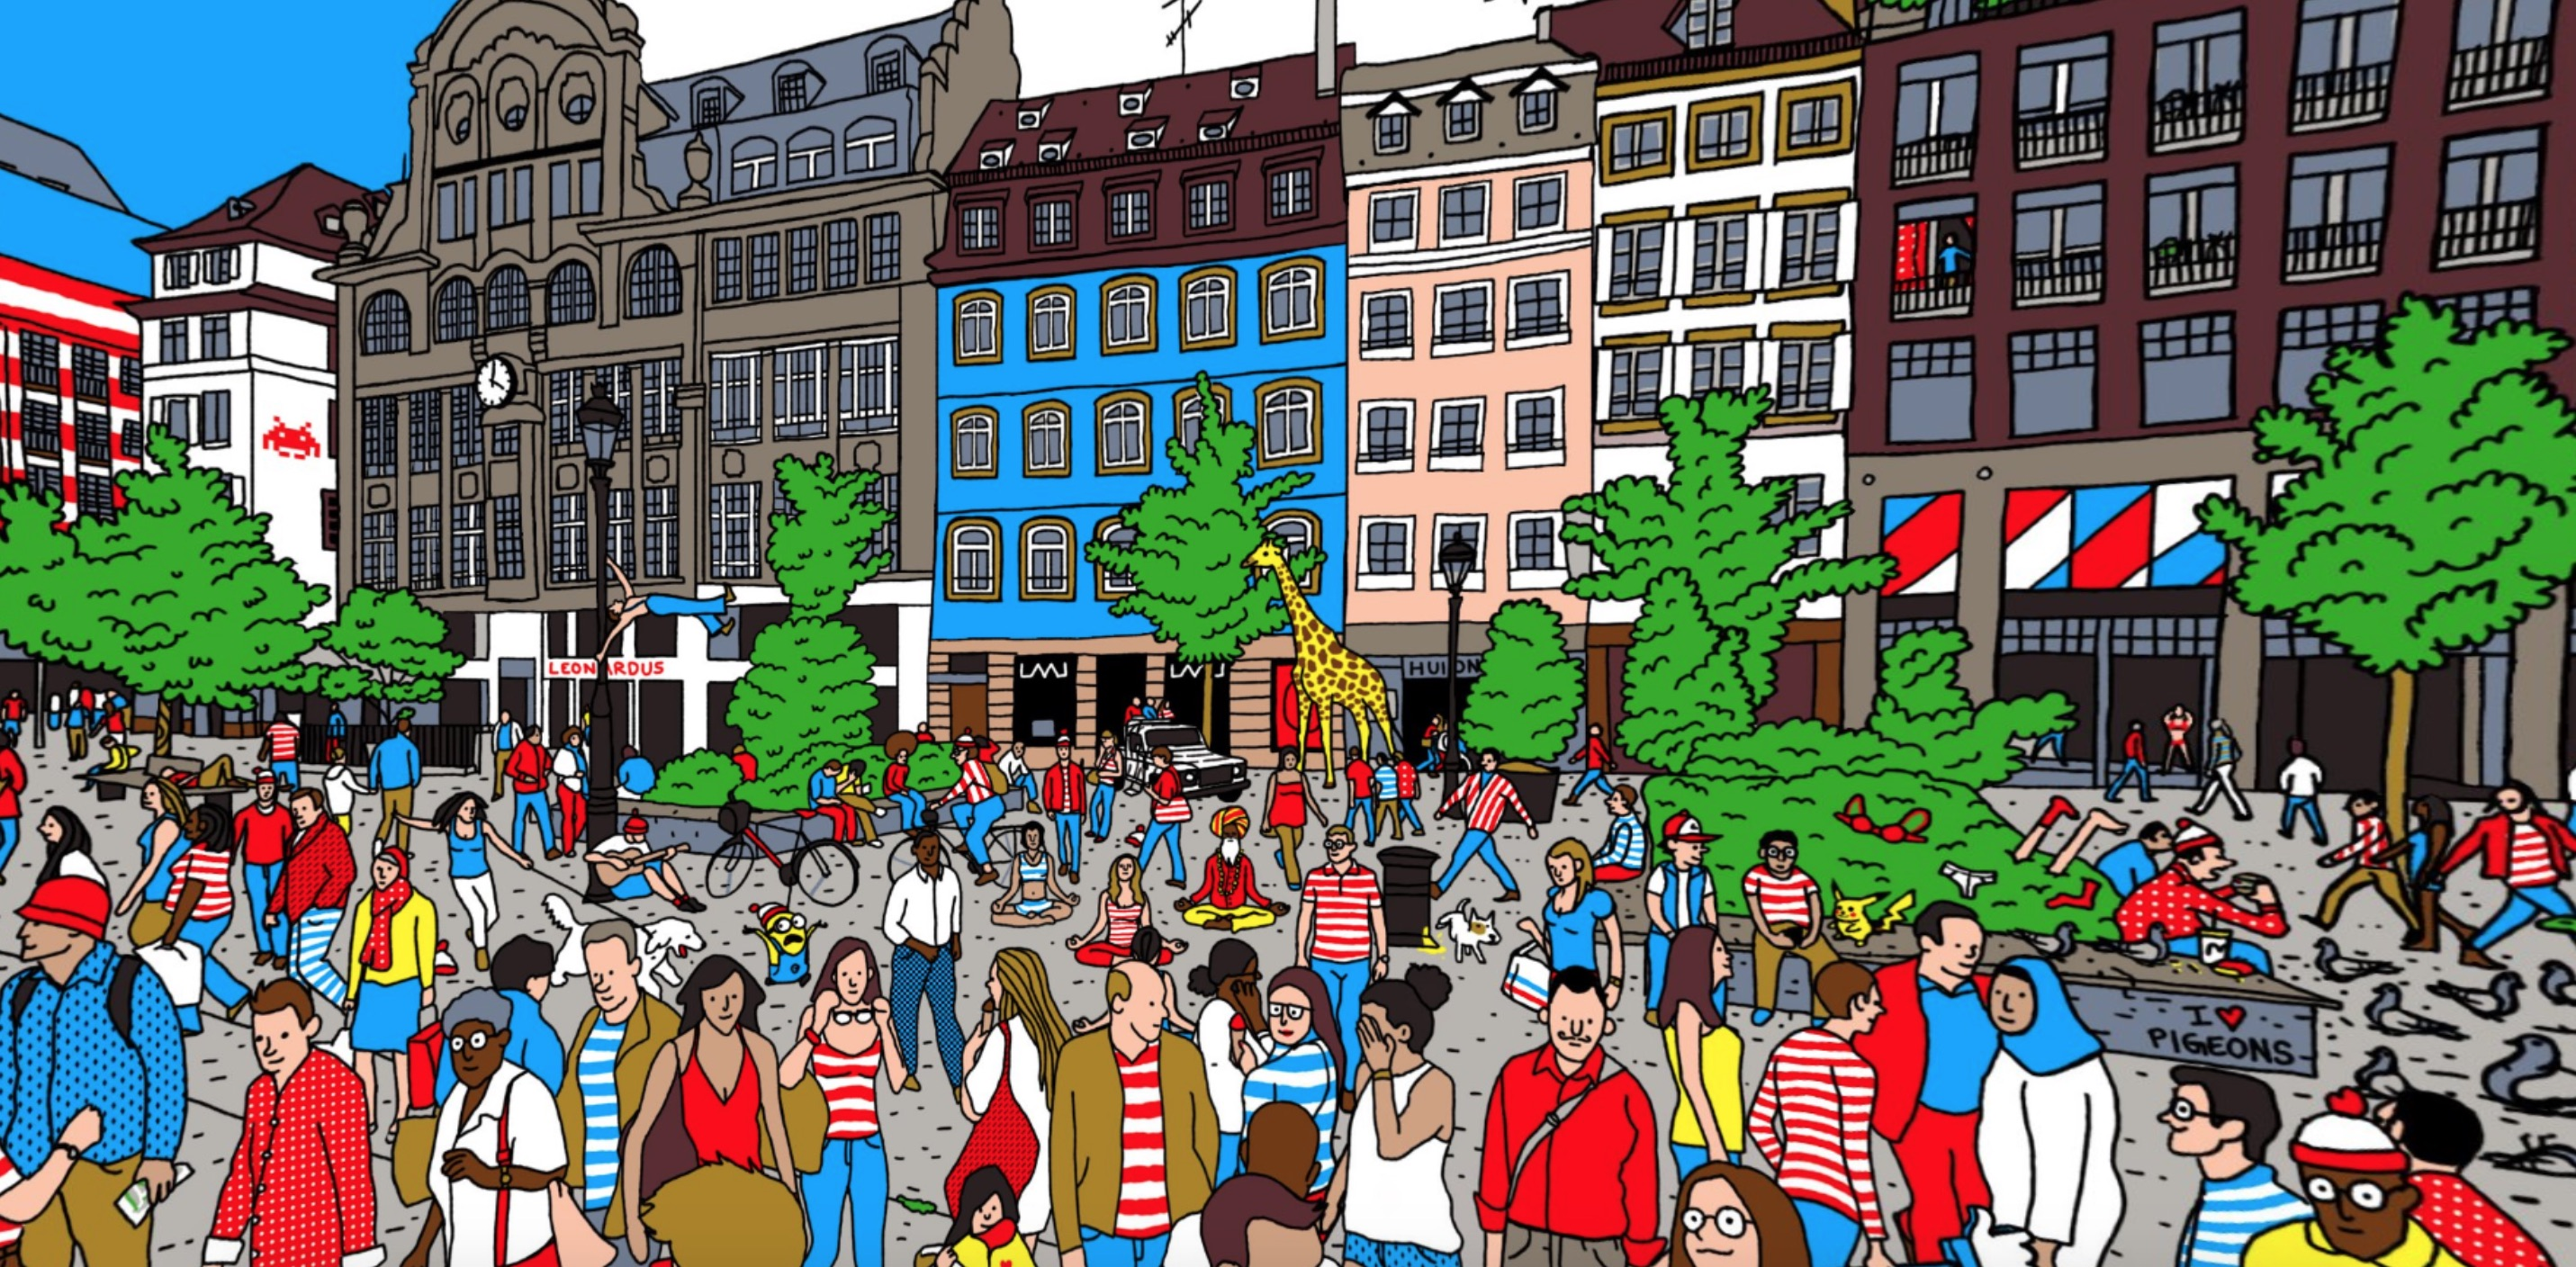 Can you find Waldo in this 360 image?